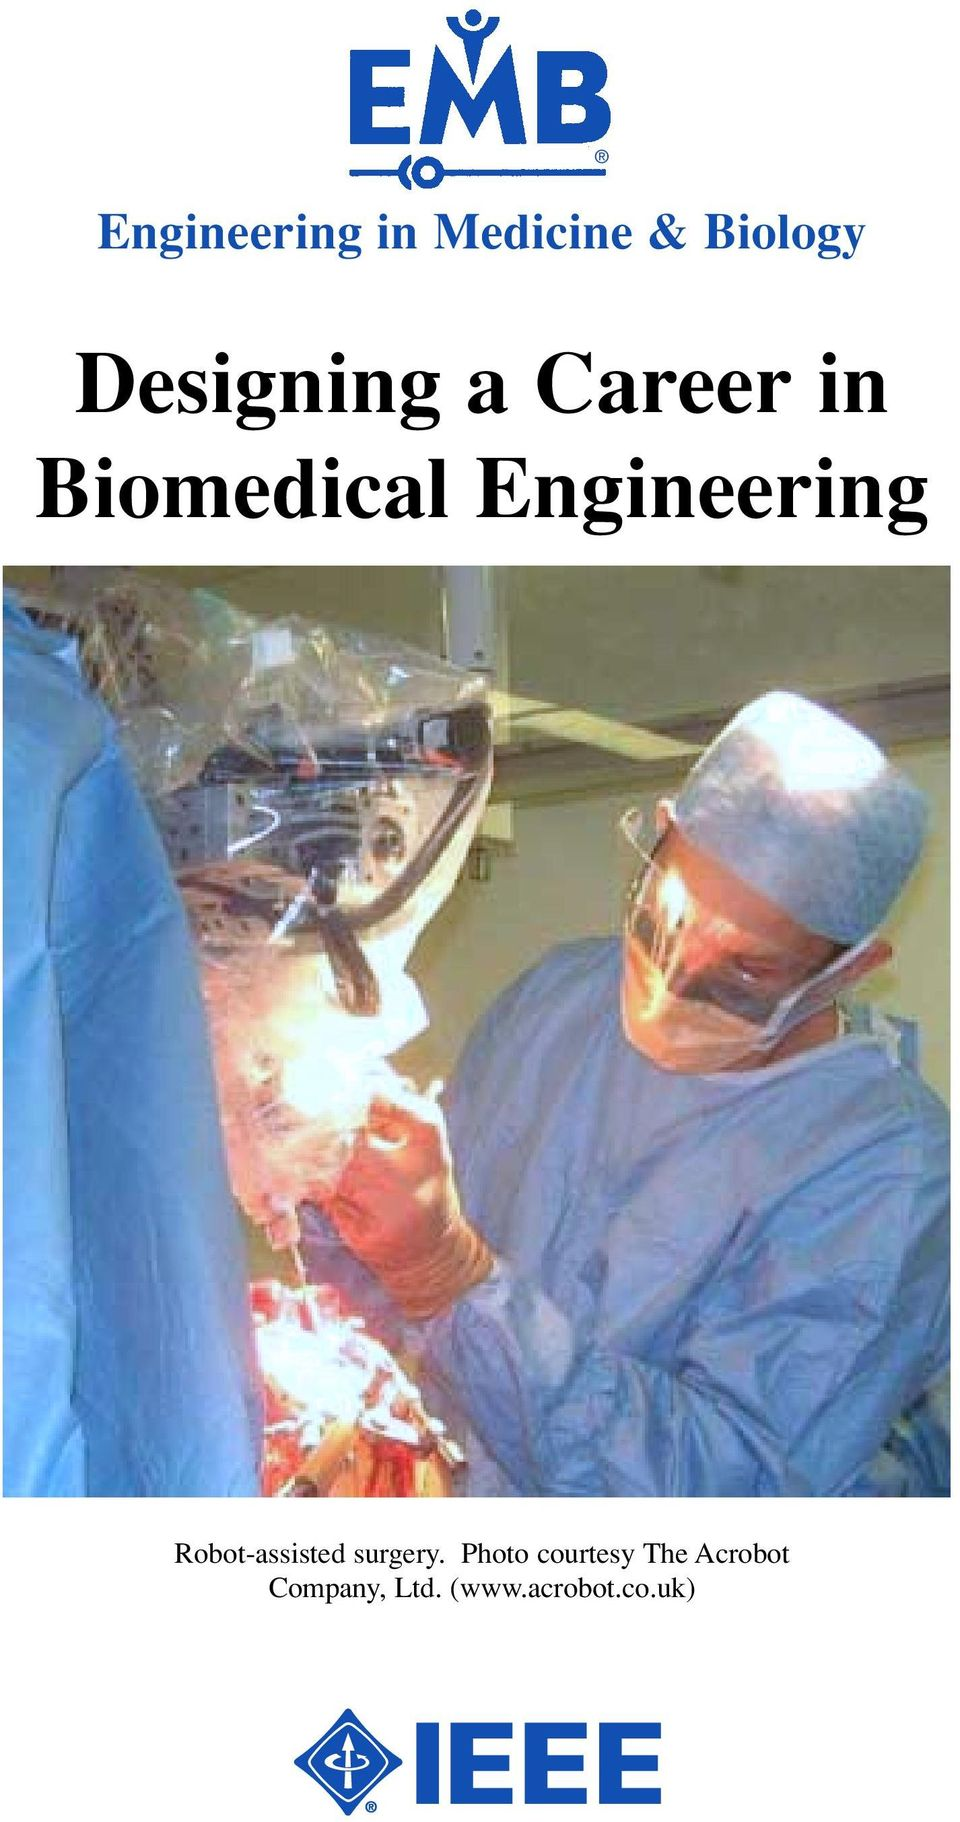 Engineering Robot-assisted surgery.